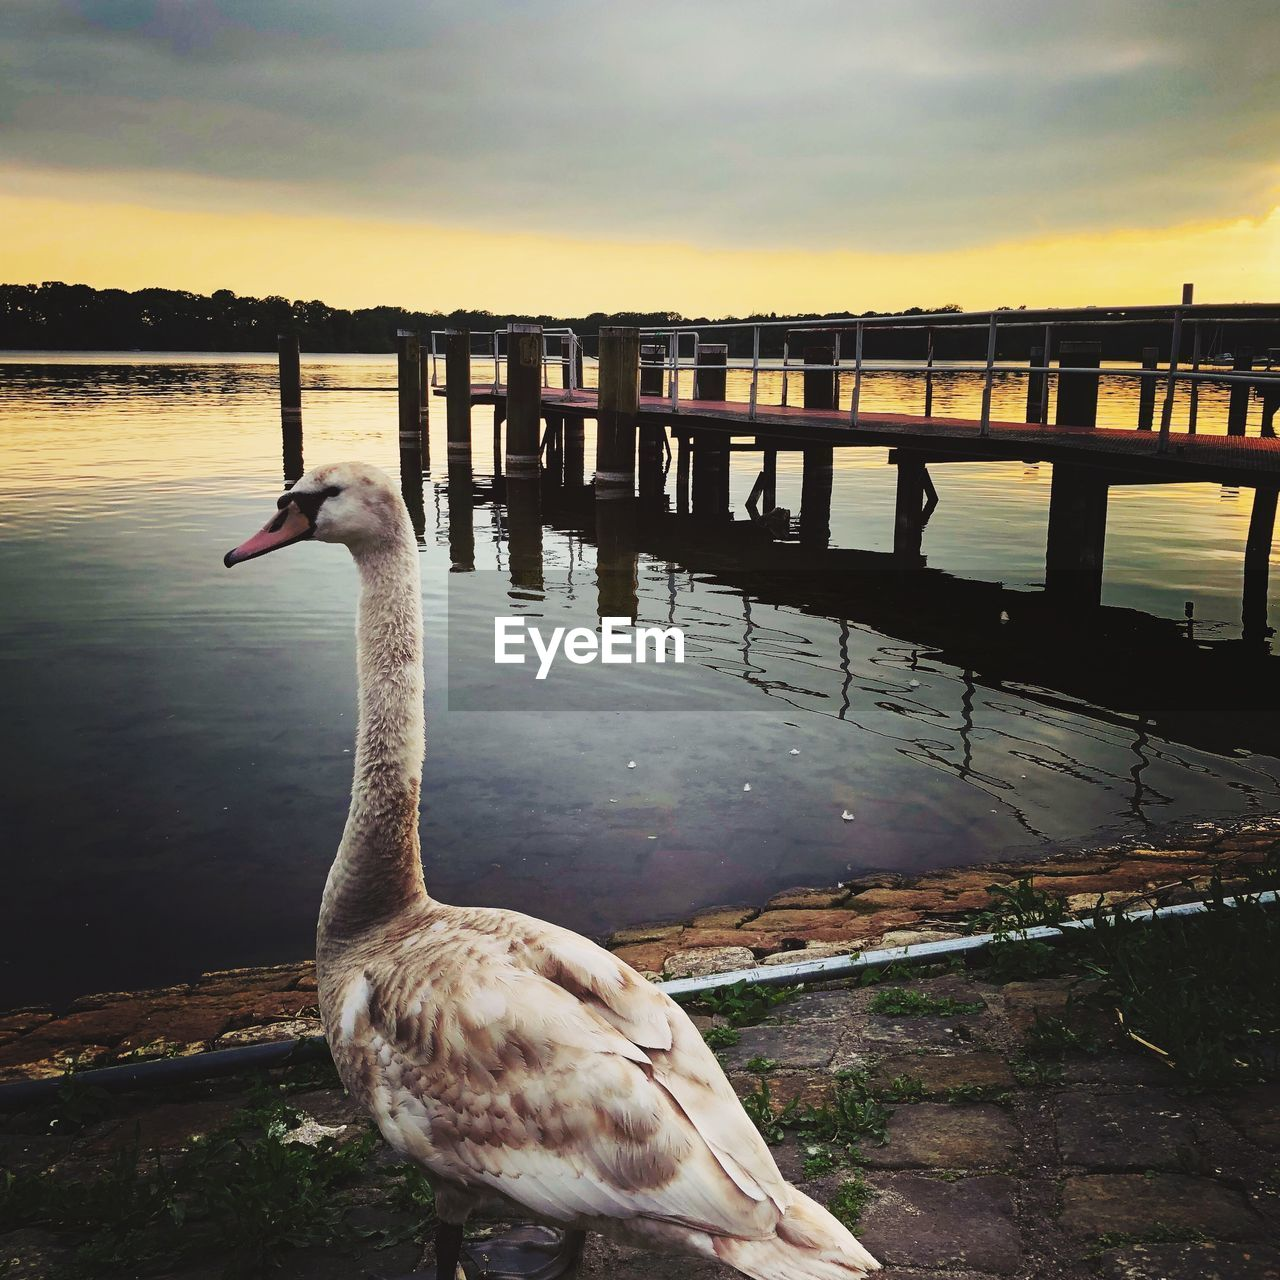 water, animal themes, animal, vertebrate, bird, animal wildlife, sunset, sky, animals in the wild, one animal, nature, lake, beauty in nature, cloud - sky, architecture, no people, built structure, reflection, water bird